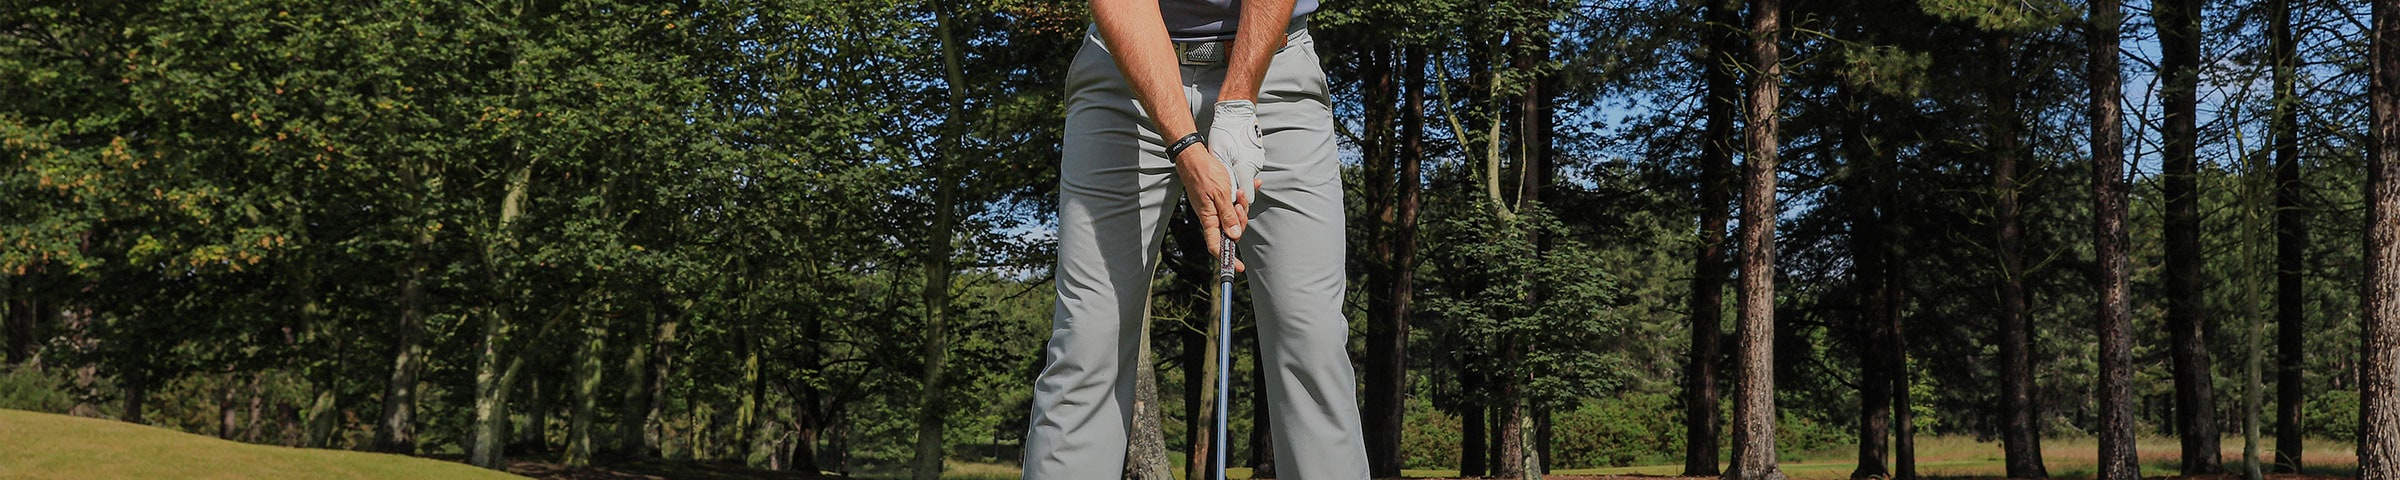 MEN'S GOLF TROUSERS